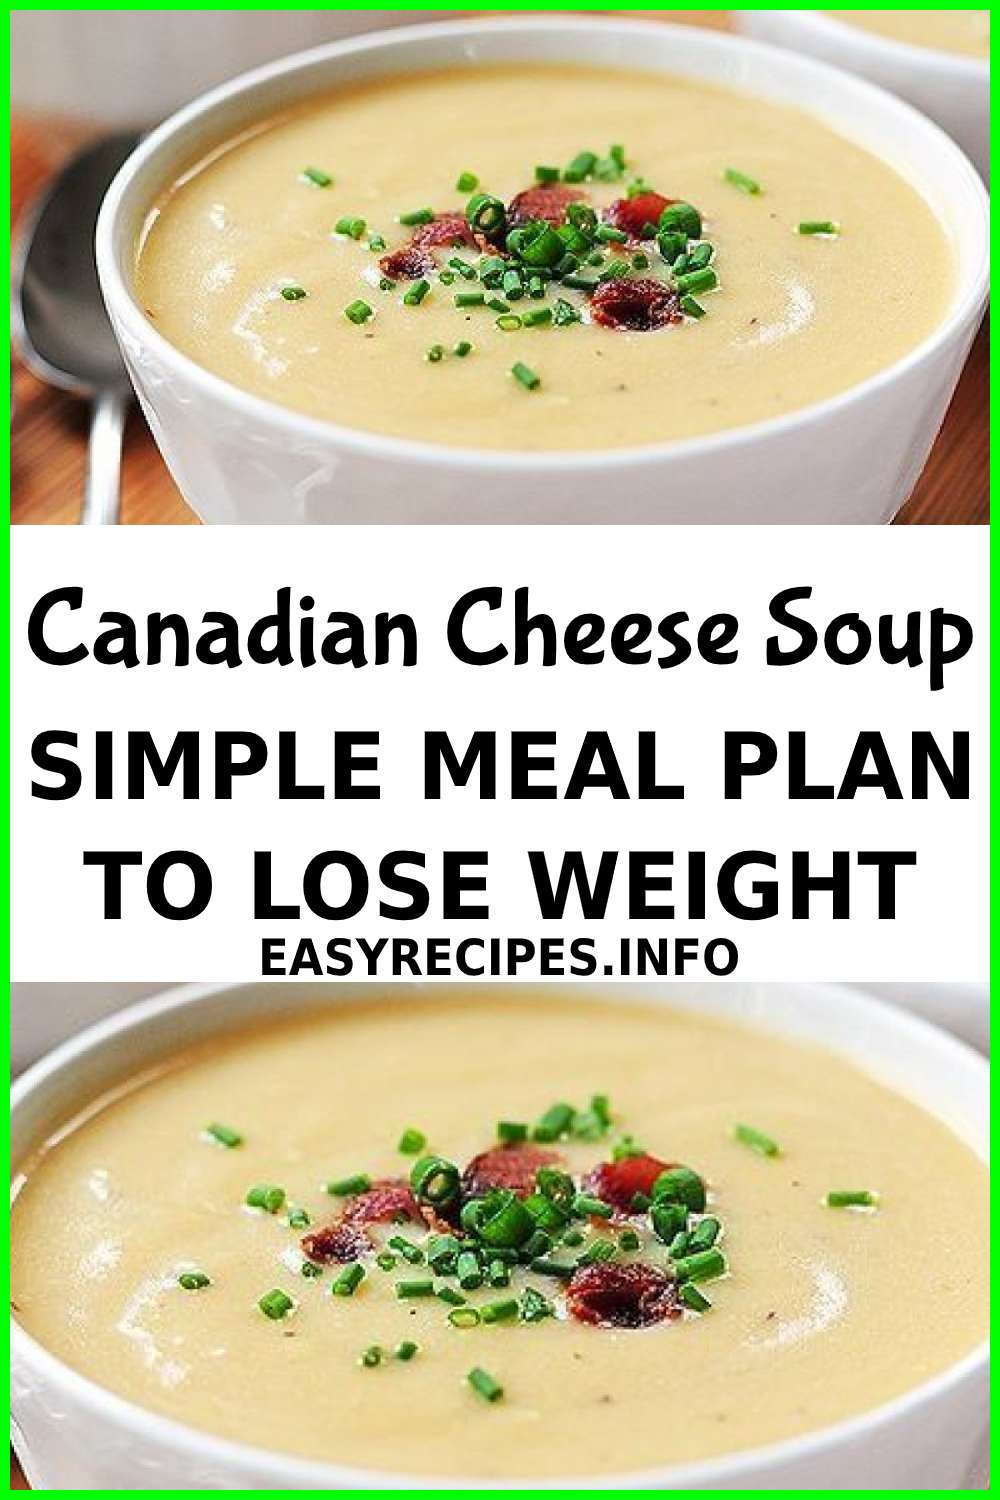 simple meal plan to lose weight, 7 day diet plan for weight loss, 30-day meal plan for weight loss, 7-day diet meal plan, quick weight loss diet plan, diet meal plan to lose weight, fat loss diet plan for female, fast weight loss diet plan lose 5kg in 5 days, quick weight loss diet plan, fast weight loss diet plan, fast weight loss diet plan lose 5kg in 5 days, fast weight loss diet plan lose 5kg 5 days, quick weight loss meal plan, best fast weight loss diet plan, healthy fast weight loss diet plan, weight loss diet plan, 7 day diet plan for weight loss, weight loss diet plan 7 days, weight loss diet plan low carb, quick weight loss diet plan, weight loss diet plan for women, vegan for weight loss meal plan, quick weight loss diet plan, indian diet plan for weight loss in one month pdf, fast weight loss diet plan lose 5kg in 5 days, diet plan for weight loss for female, 7 day diet plan for weight loss, simple meal plan to lose weight, 7 day diet plan for weight loss indian, 30-day meal plan for weight loss